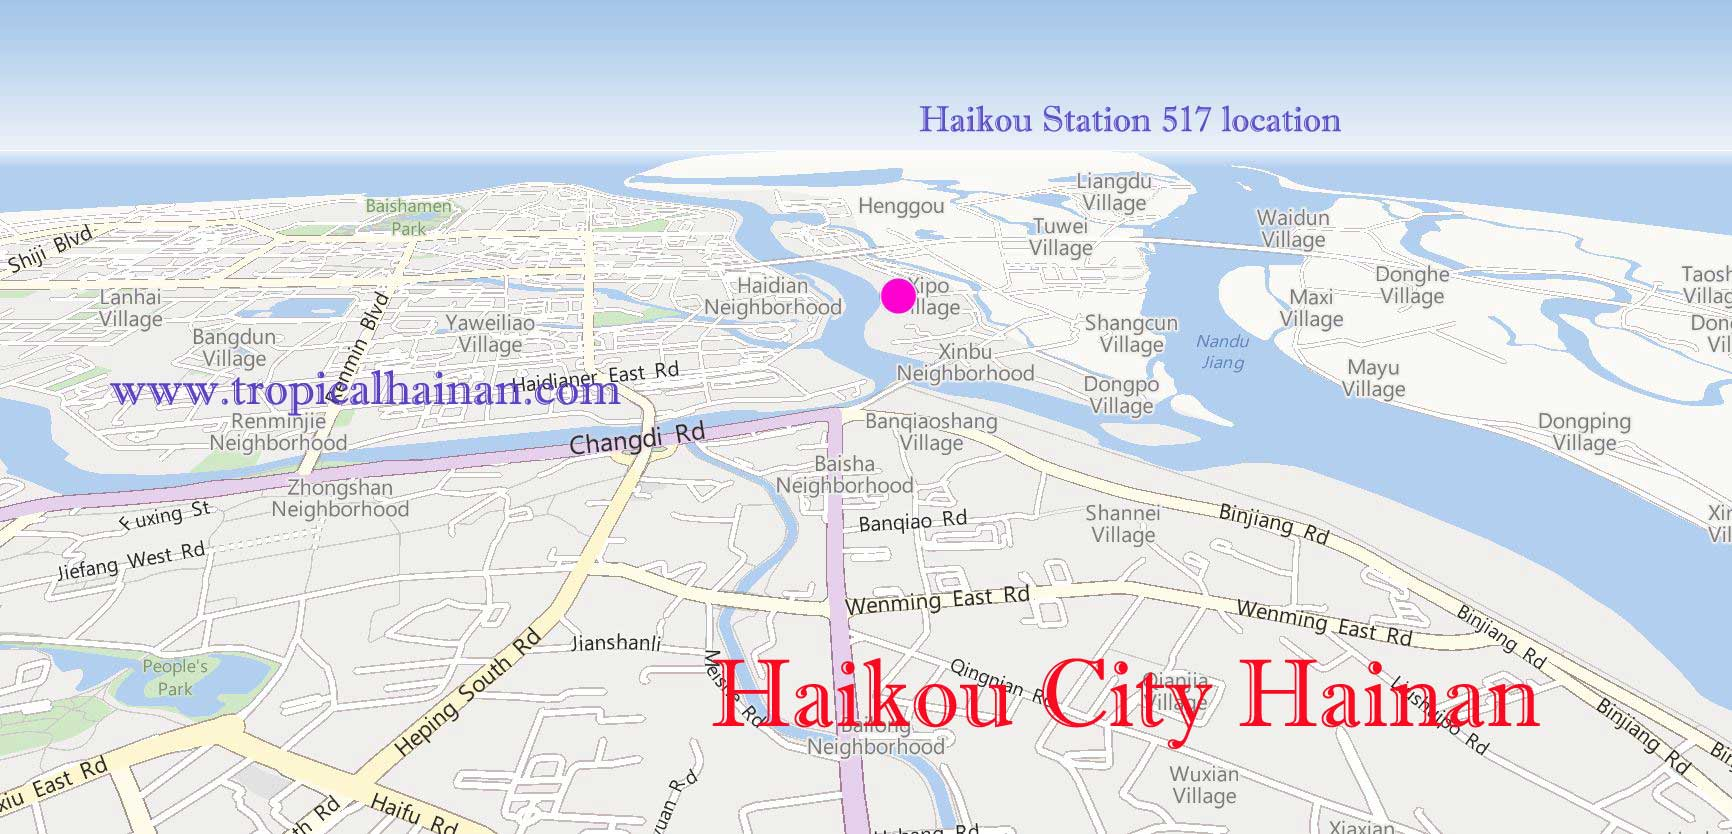 Haikou Station 517 location